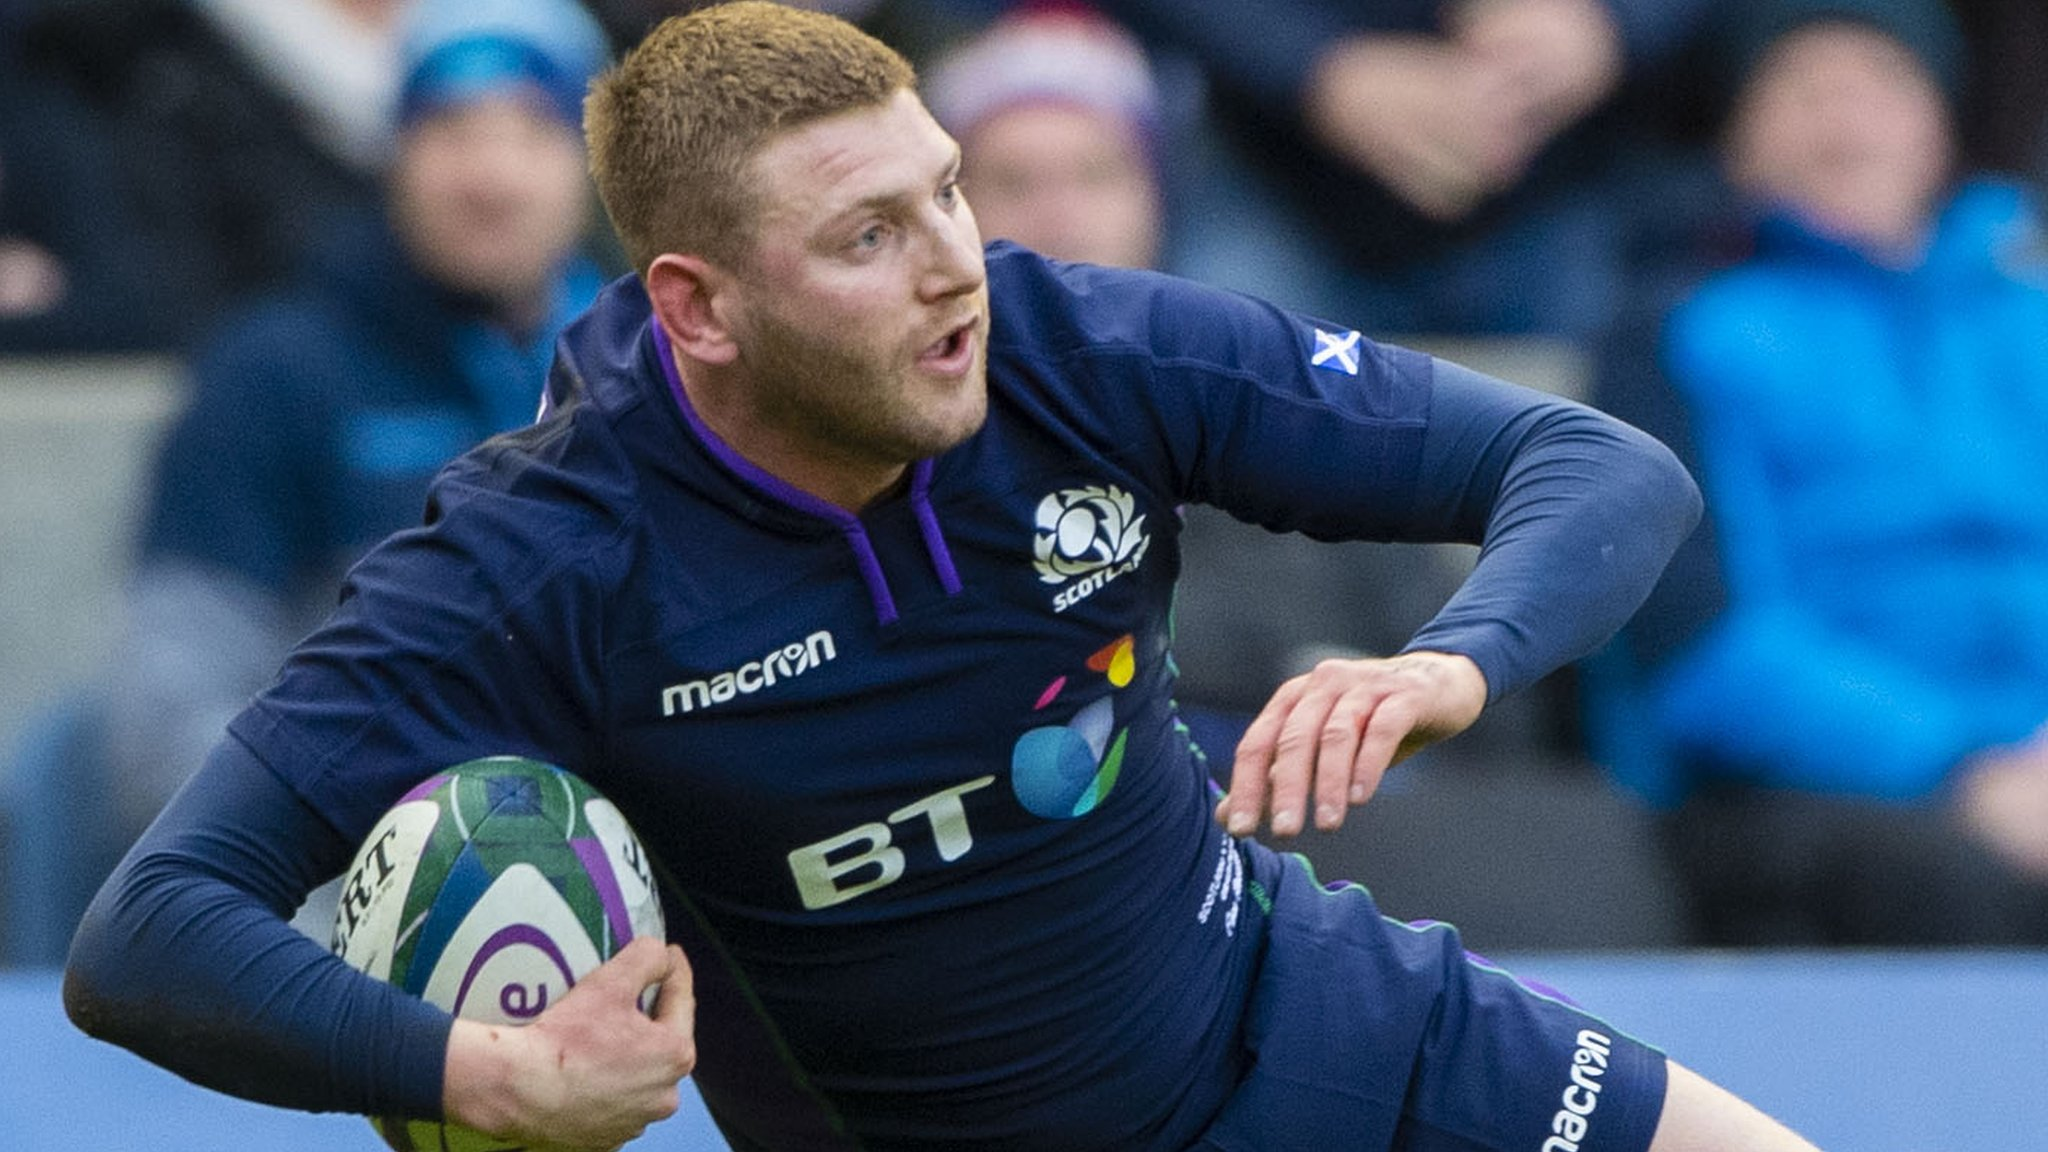 Scotland 'have to come out fighting' against France